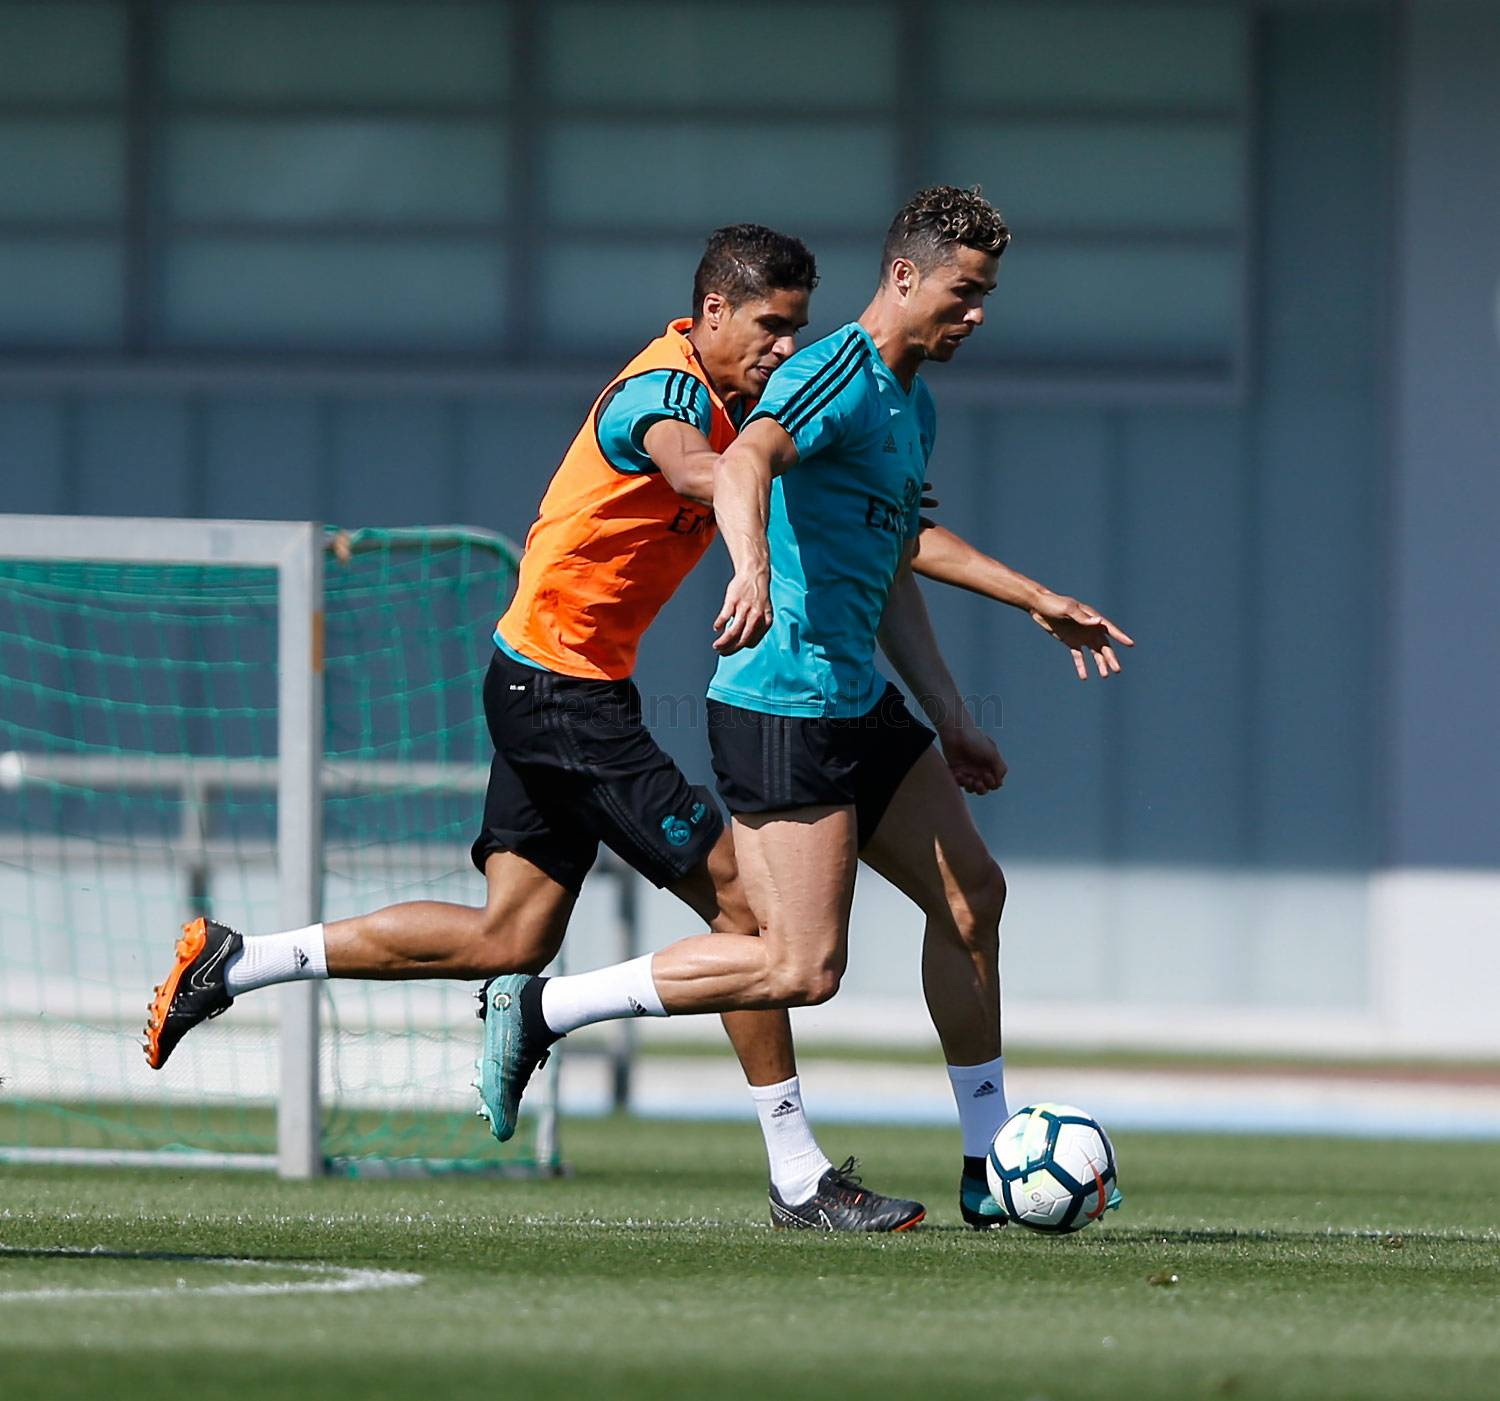 Real Madrid - Entrenamiento del Real Madrid - 15-05-2018